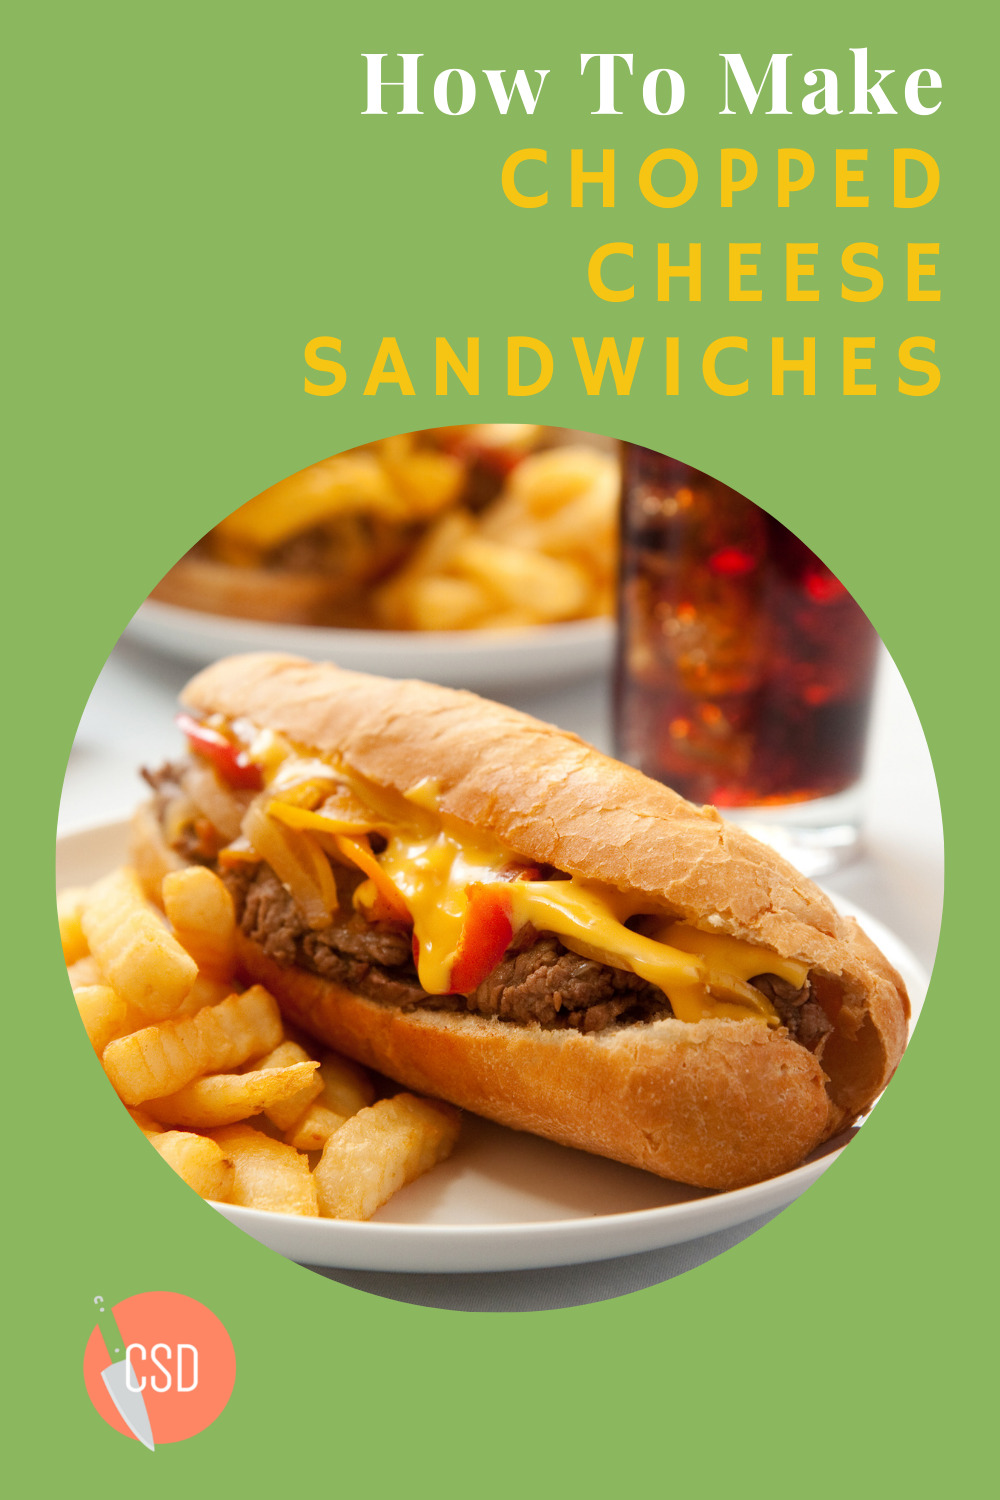 Cutsidedown.com makes cooking fun and easy! Find tons of tasty and simple recipes anyone can make! Mix things up with this delicious chopped cheese sandwich recipe!